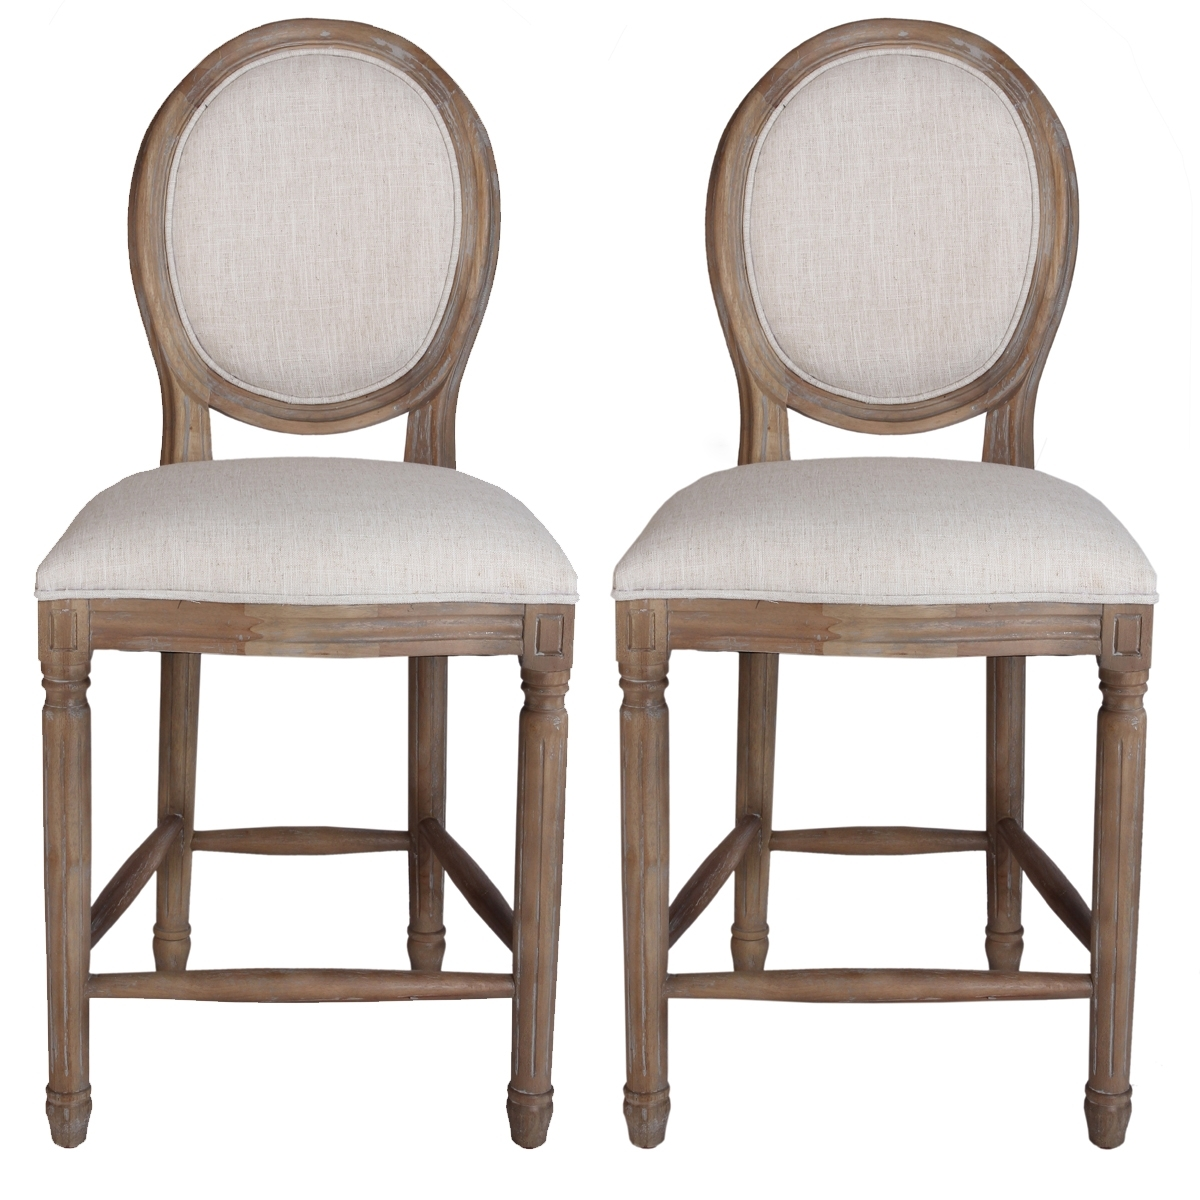 Furniture: French Country Bar Stools For Your Home Bar Or Kitchen Inside French Country Counter Stools (Image 14 of 20)